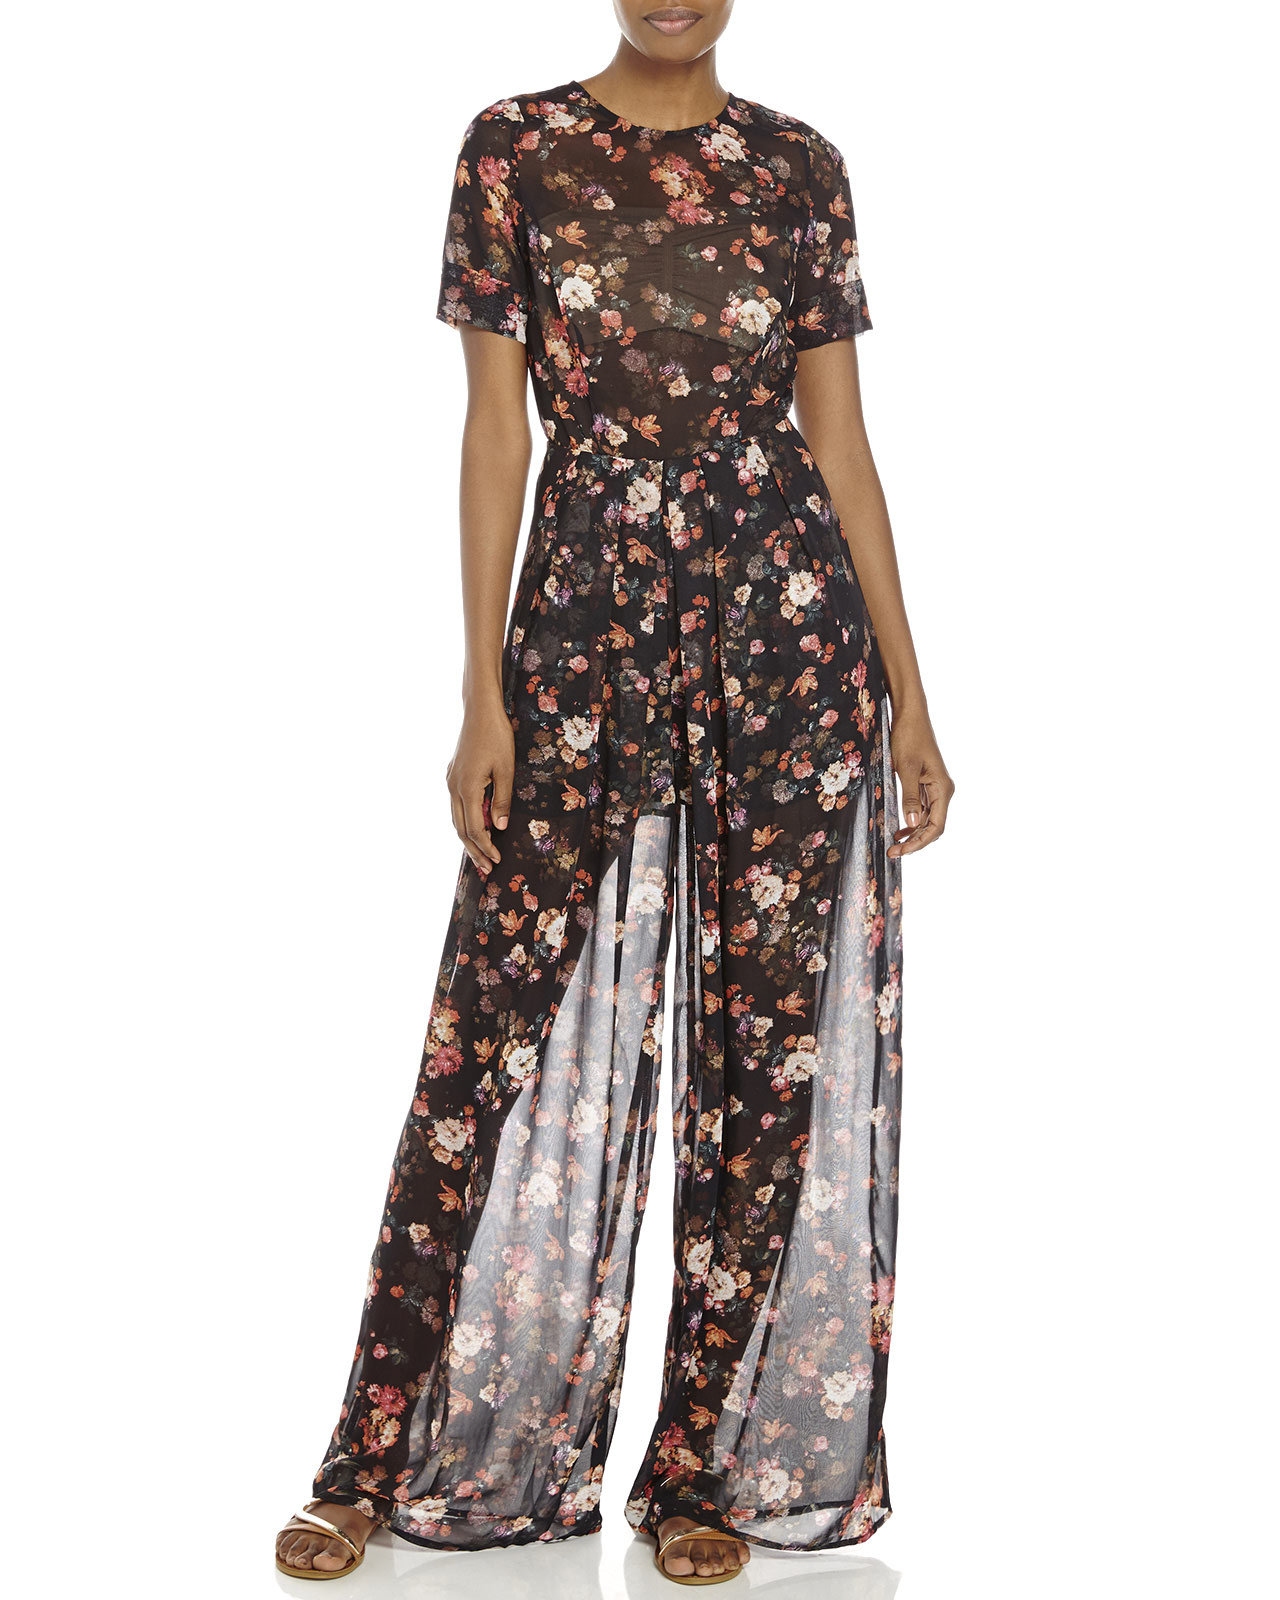 Lyst century 21 re named sheer floral print jumpsuit in for Century 21 dress shirts